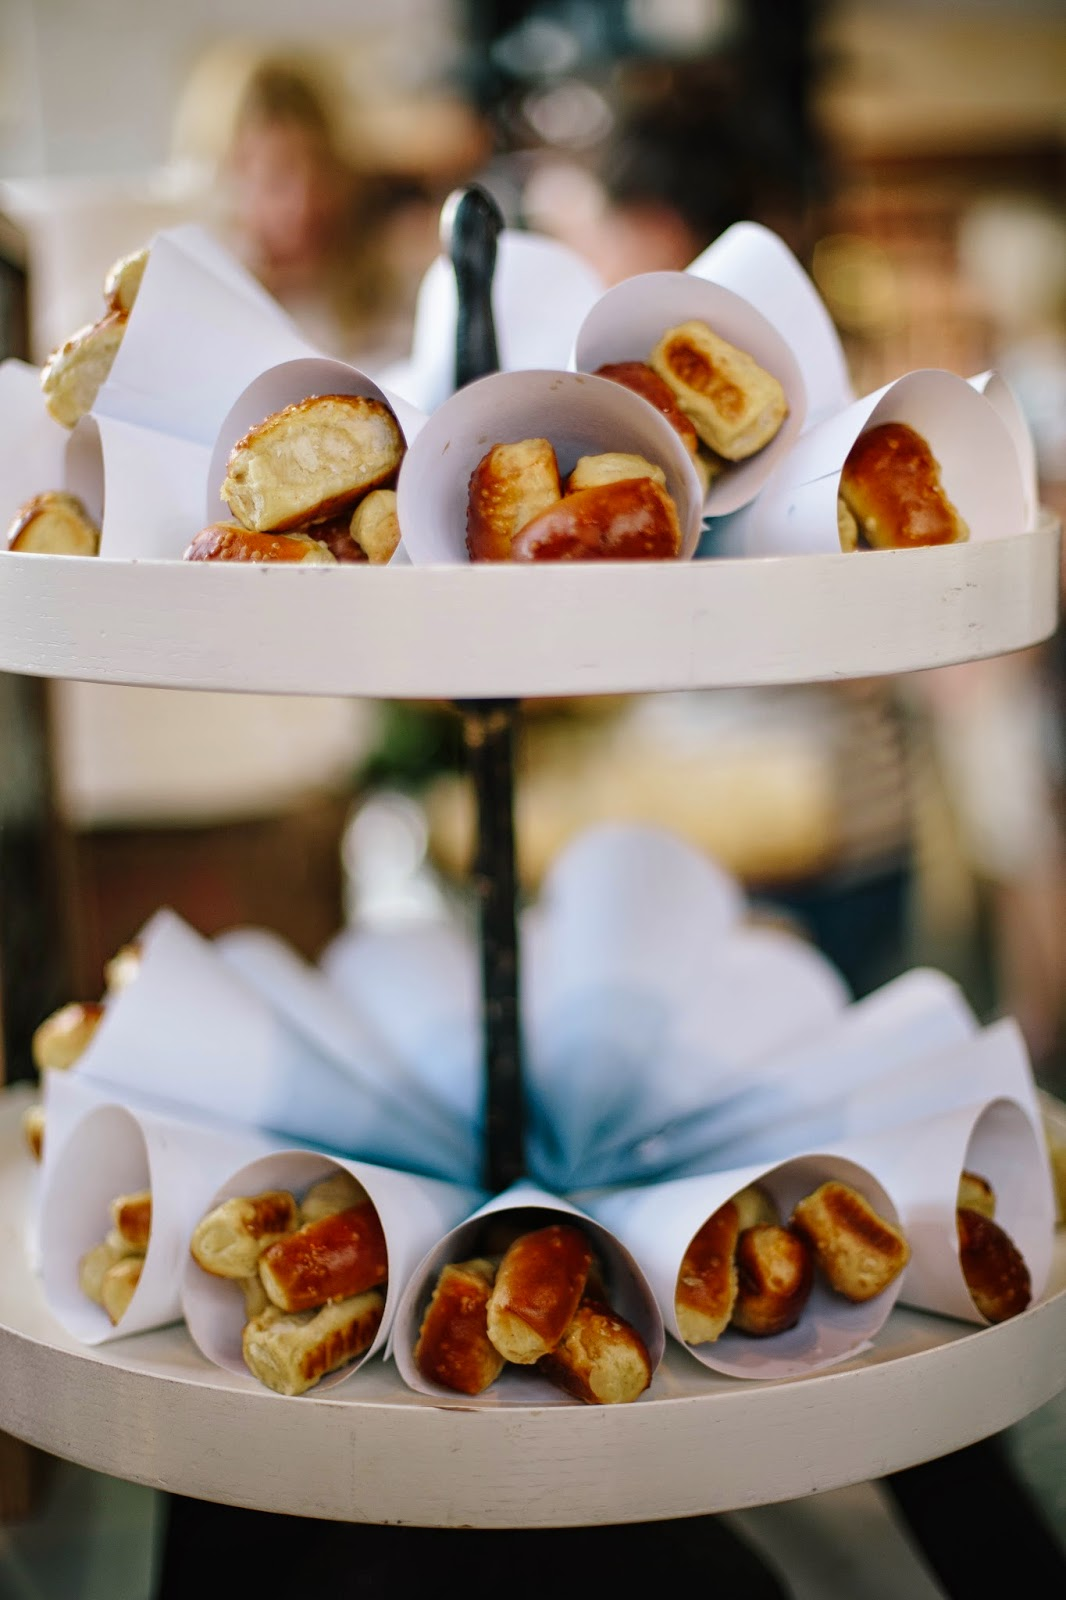 Main line wedding events anthropologie wedding registry allie out of the ordinary wedding day food philly pretzels wedding food photo anthropologie events wedding registry junglespirit Image collections